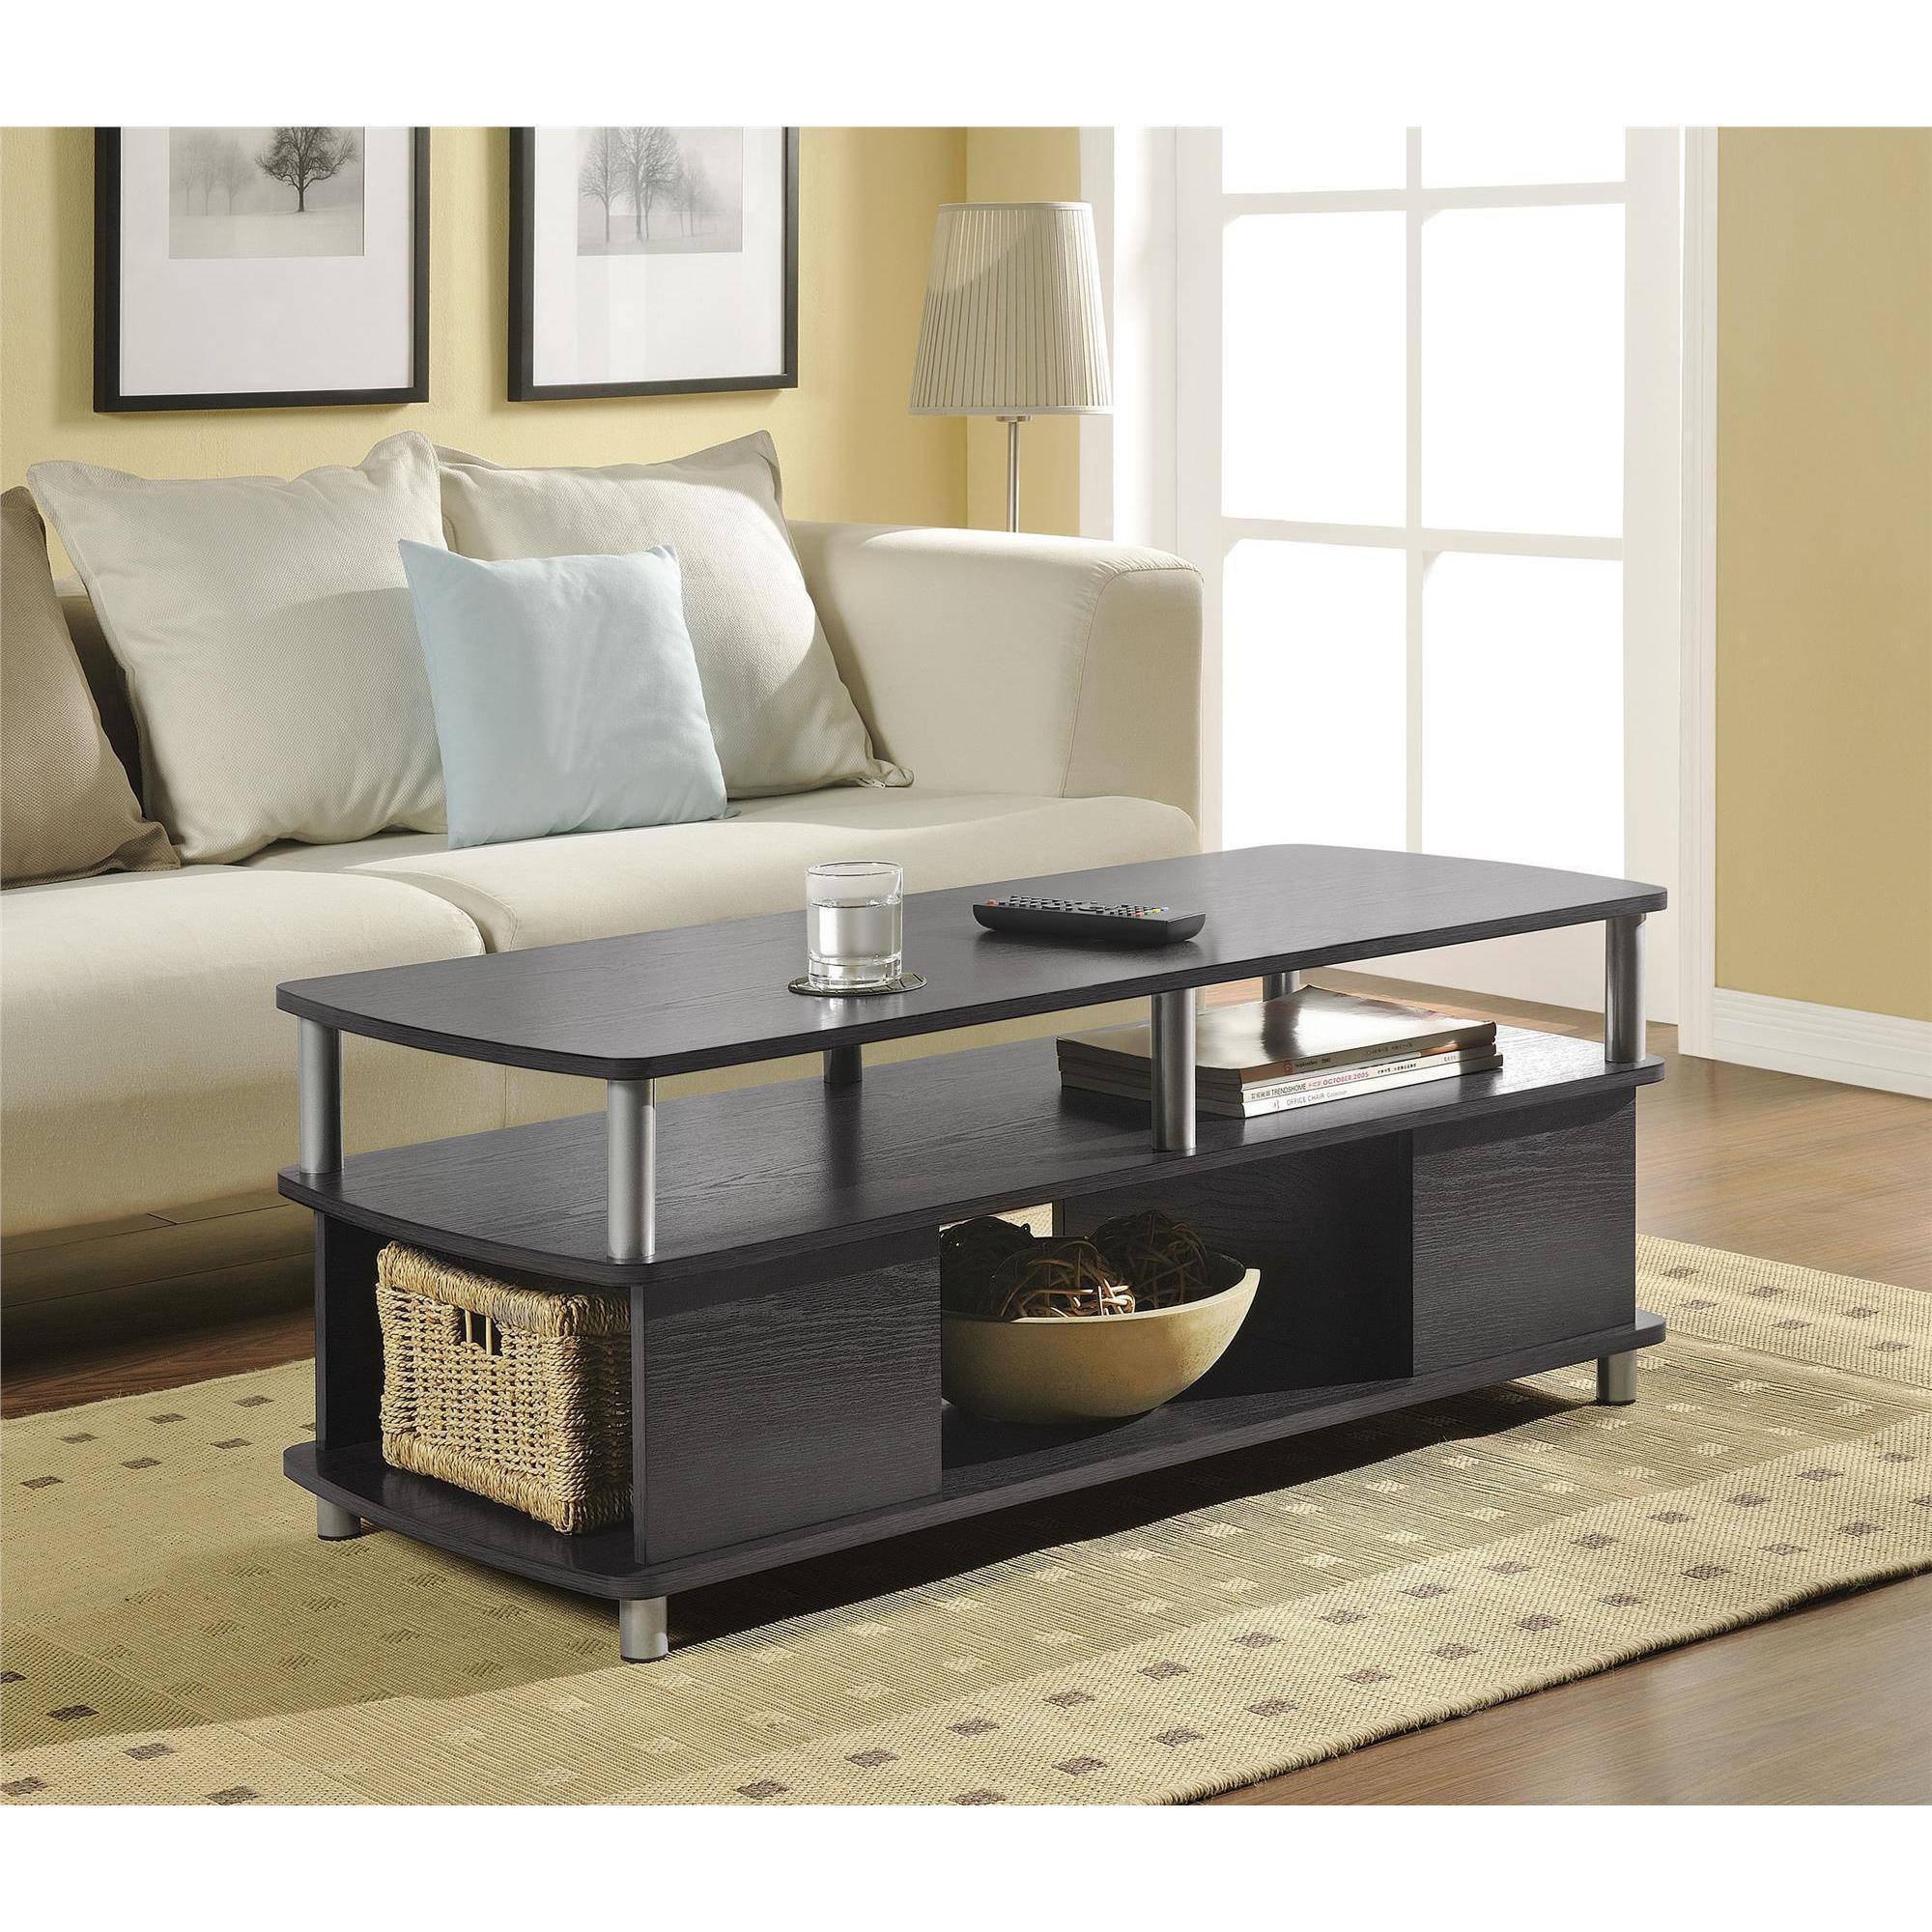 Avenue Six Yield Coffee Table Chrome and Black Glass Walmart